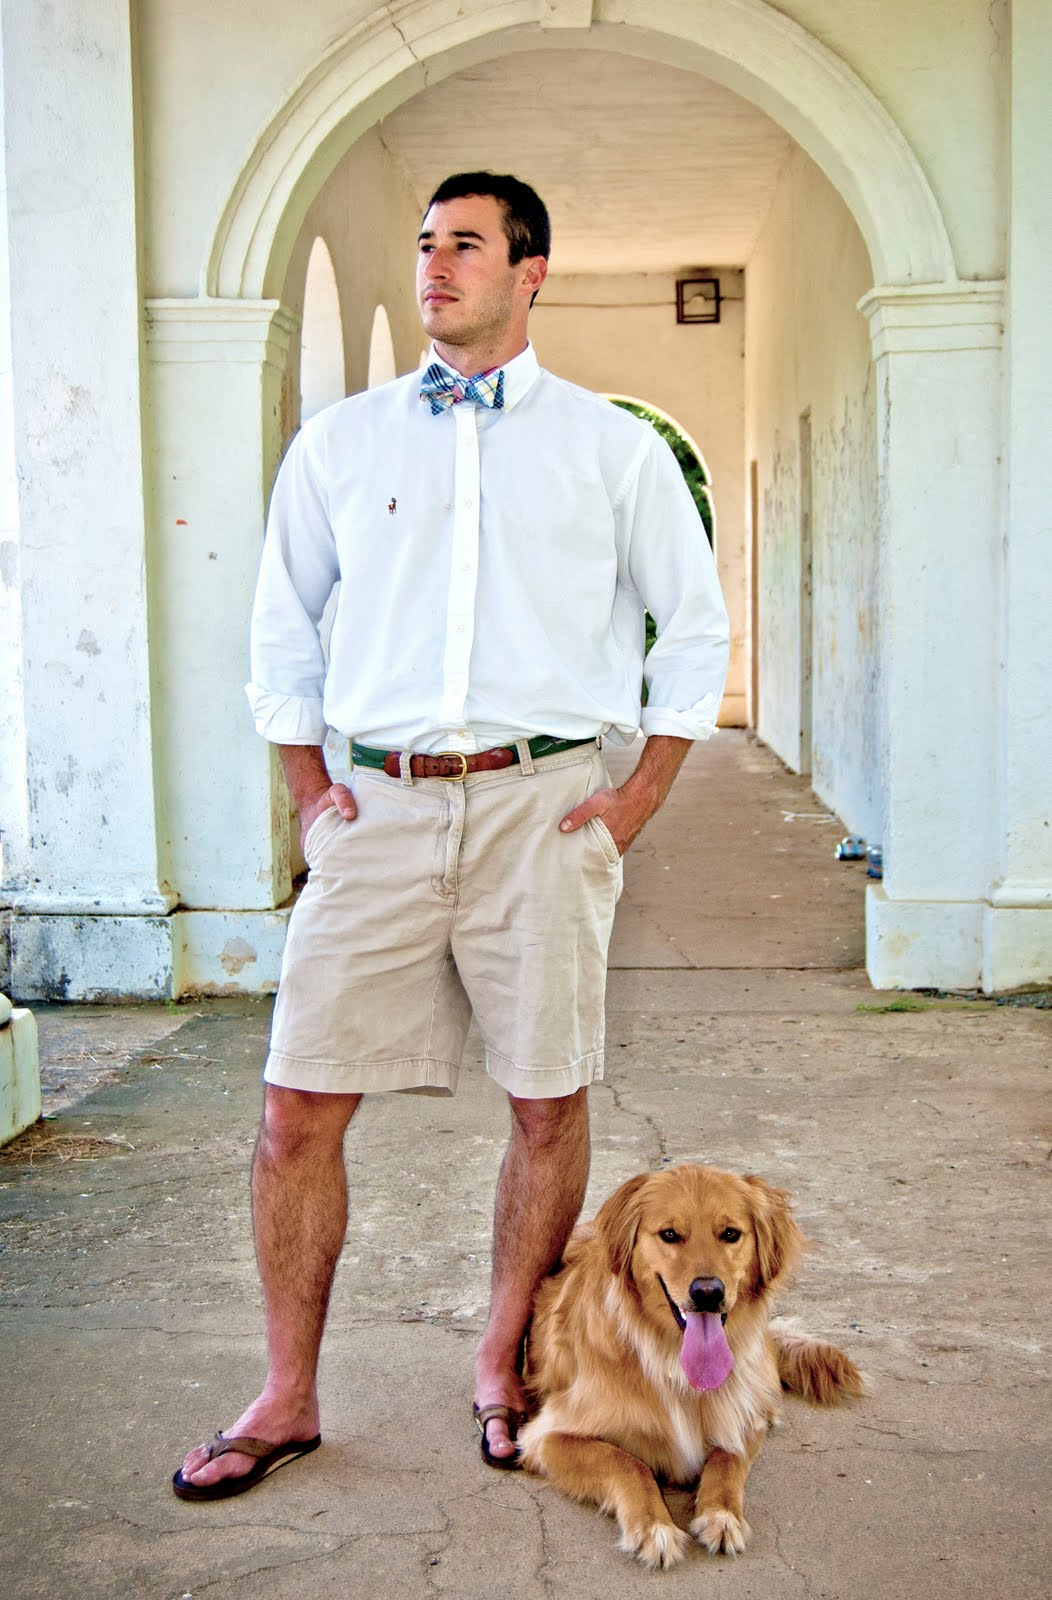 These the a form preppy condensed preppy vineyard underlining from